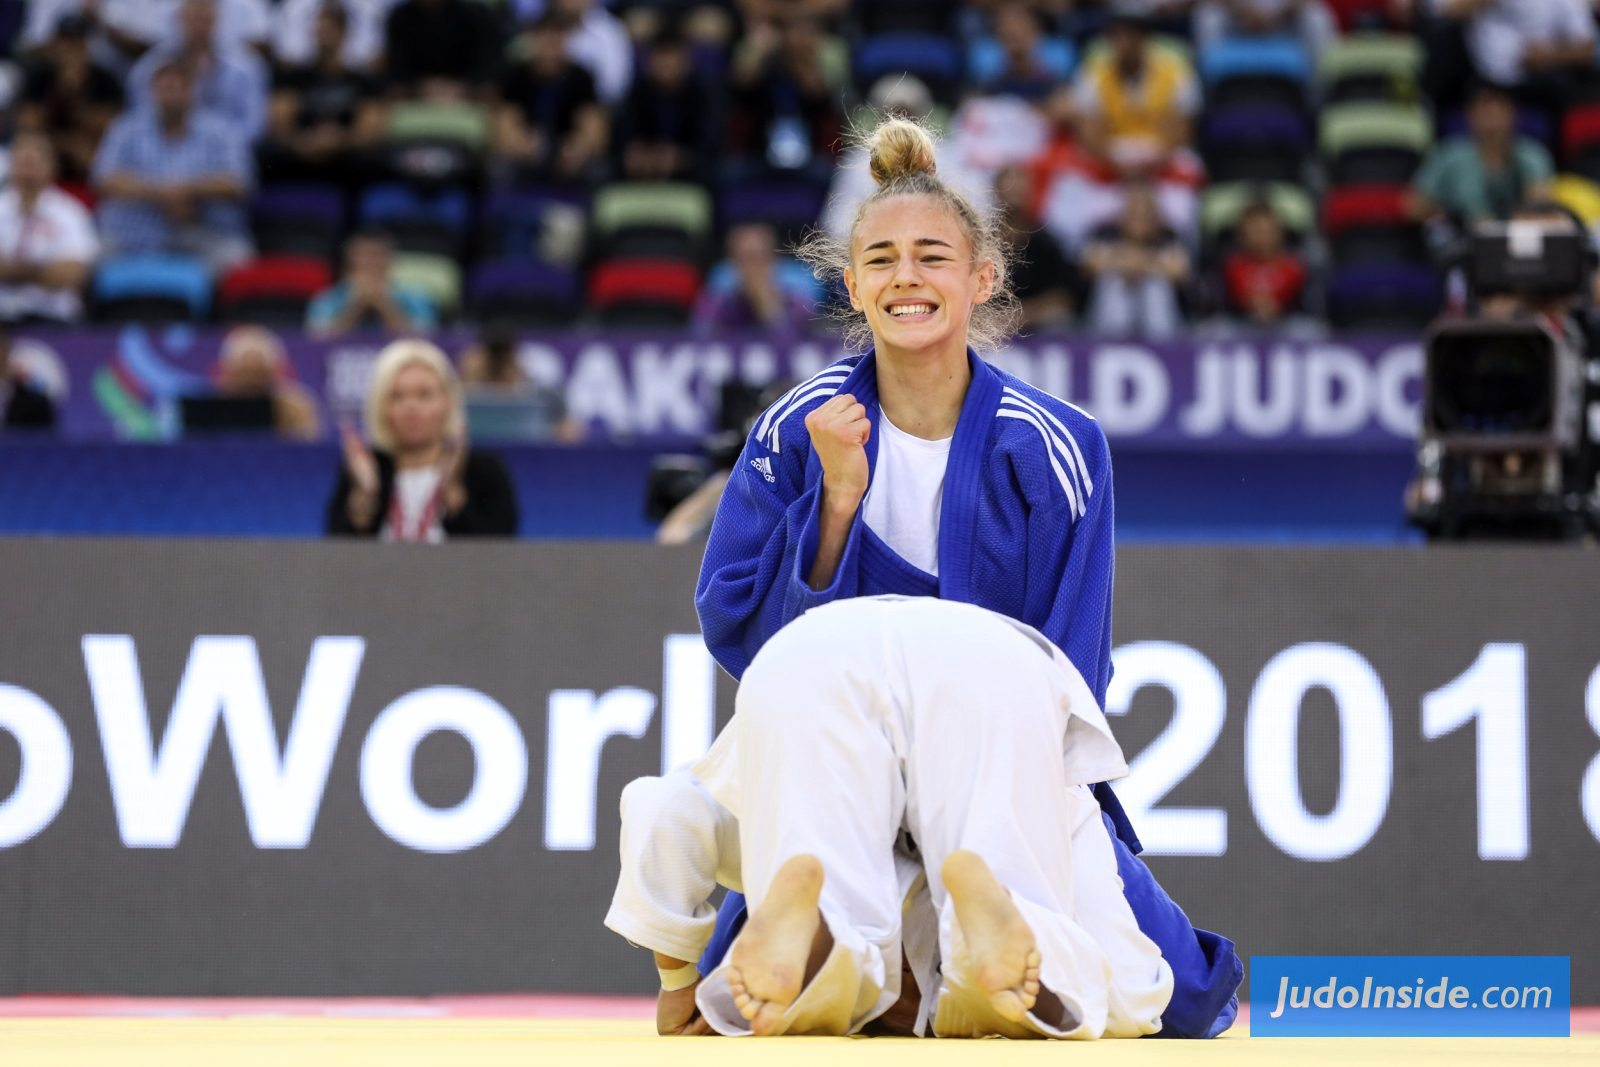 Judoinside News Daria Bilodid Youngest Ever Judo World Champion In History